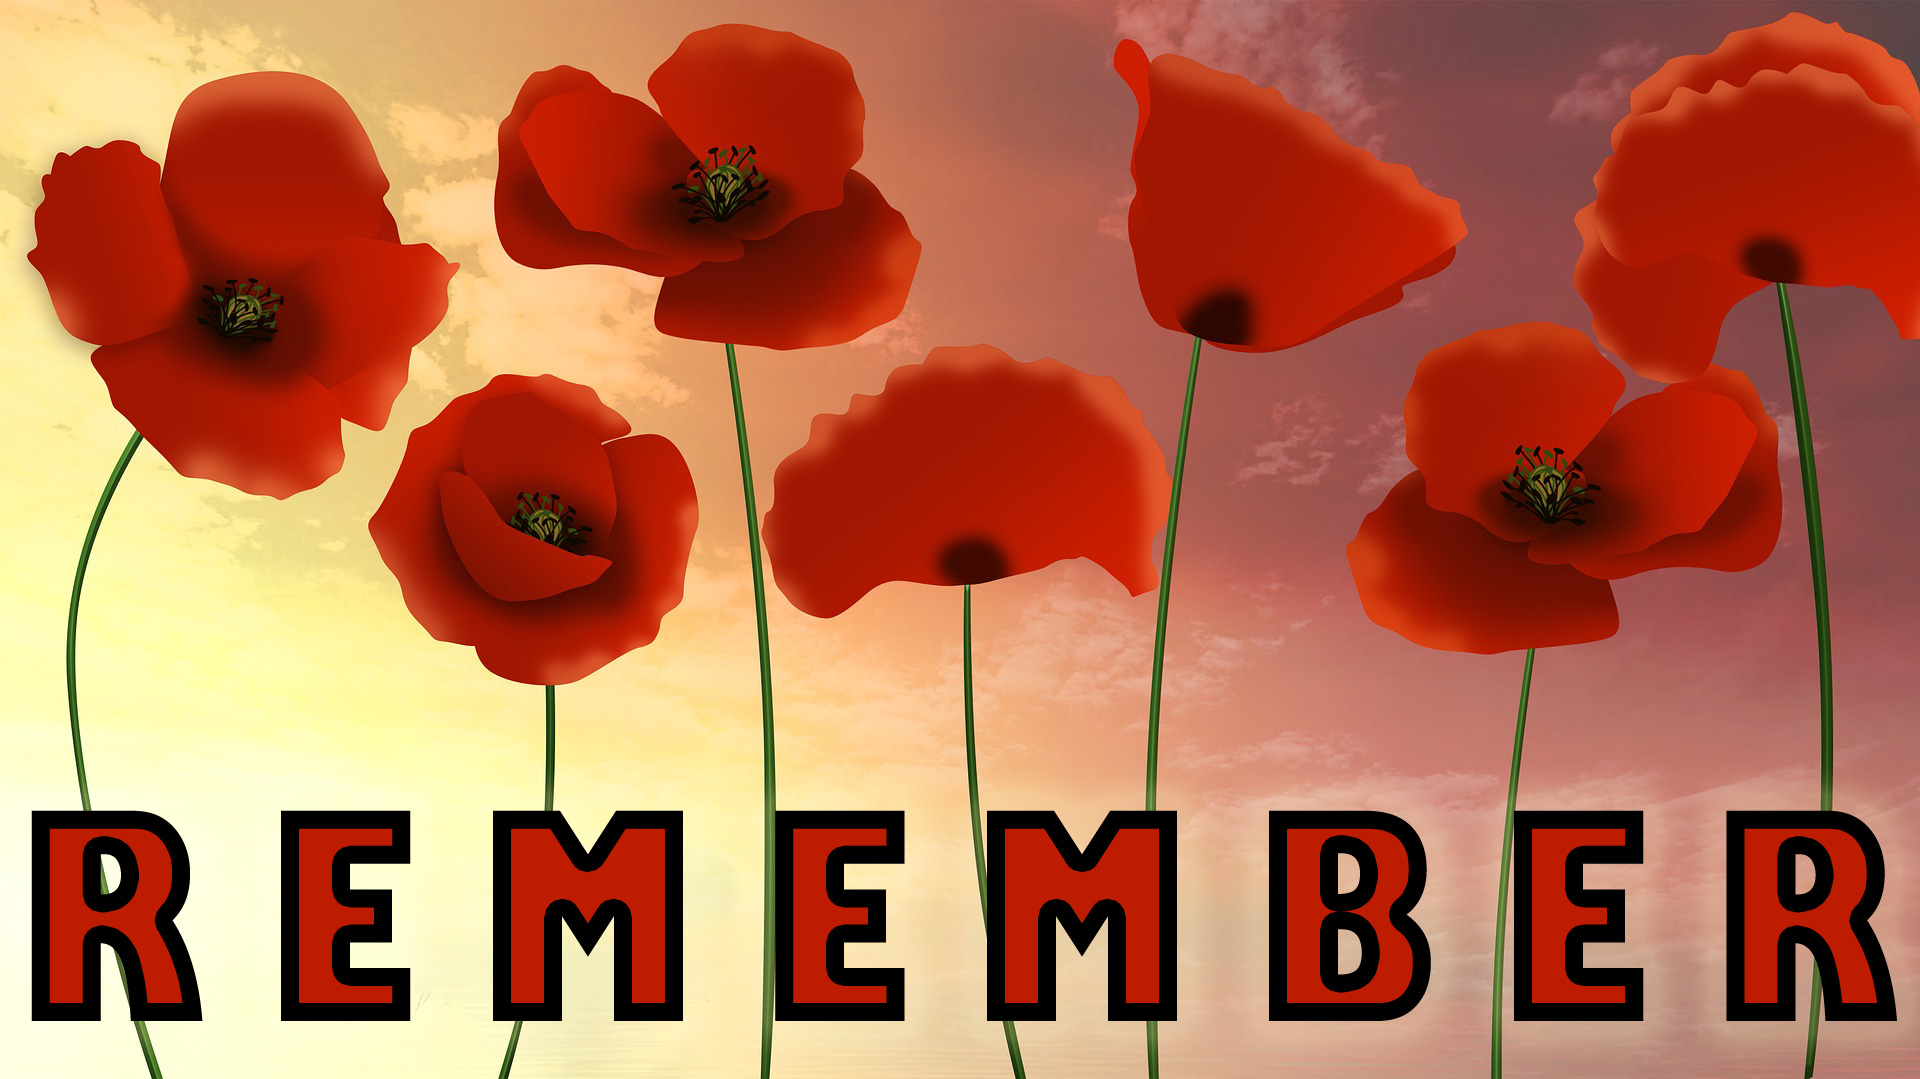 Poster of remembrance, picturing poppies, a sunset, and the word remember. Intended for Remembrance Sunday